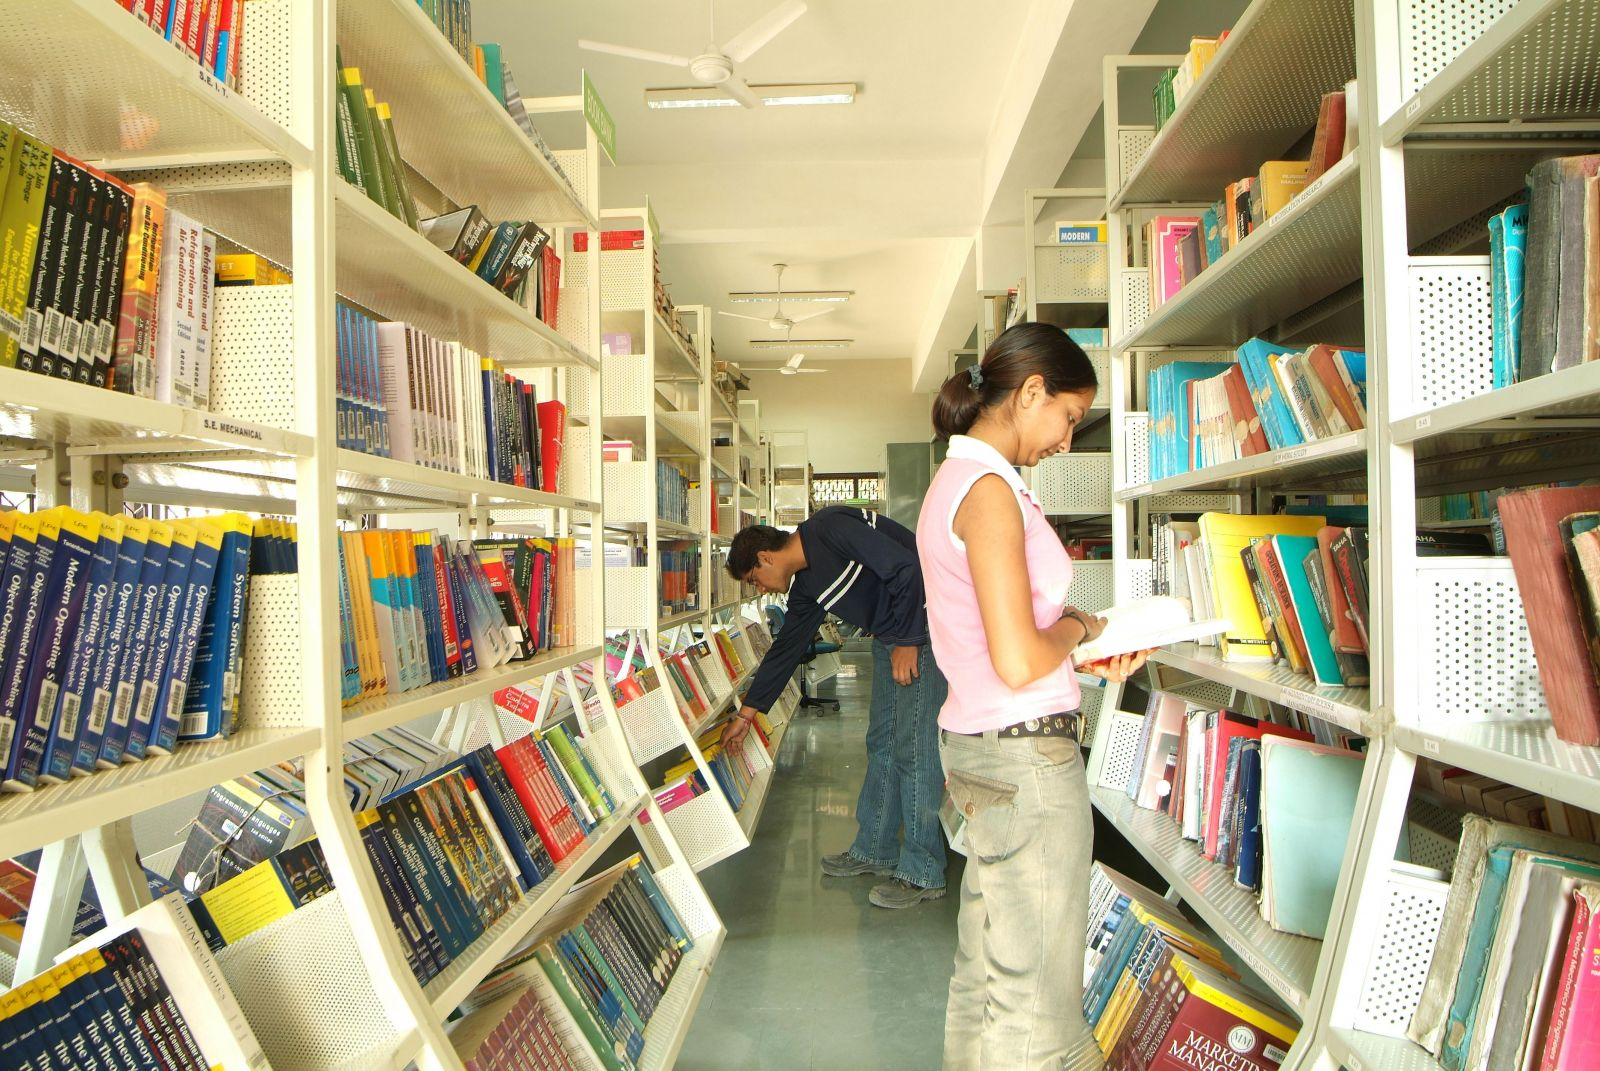 Dr DY Patil College of Engineering Library